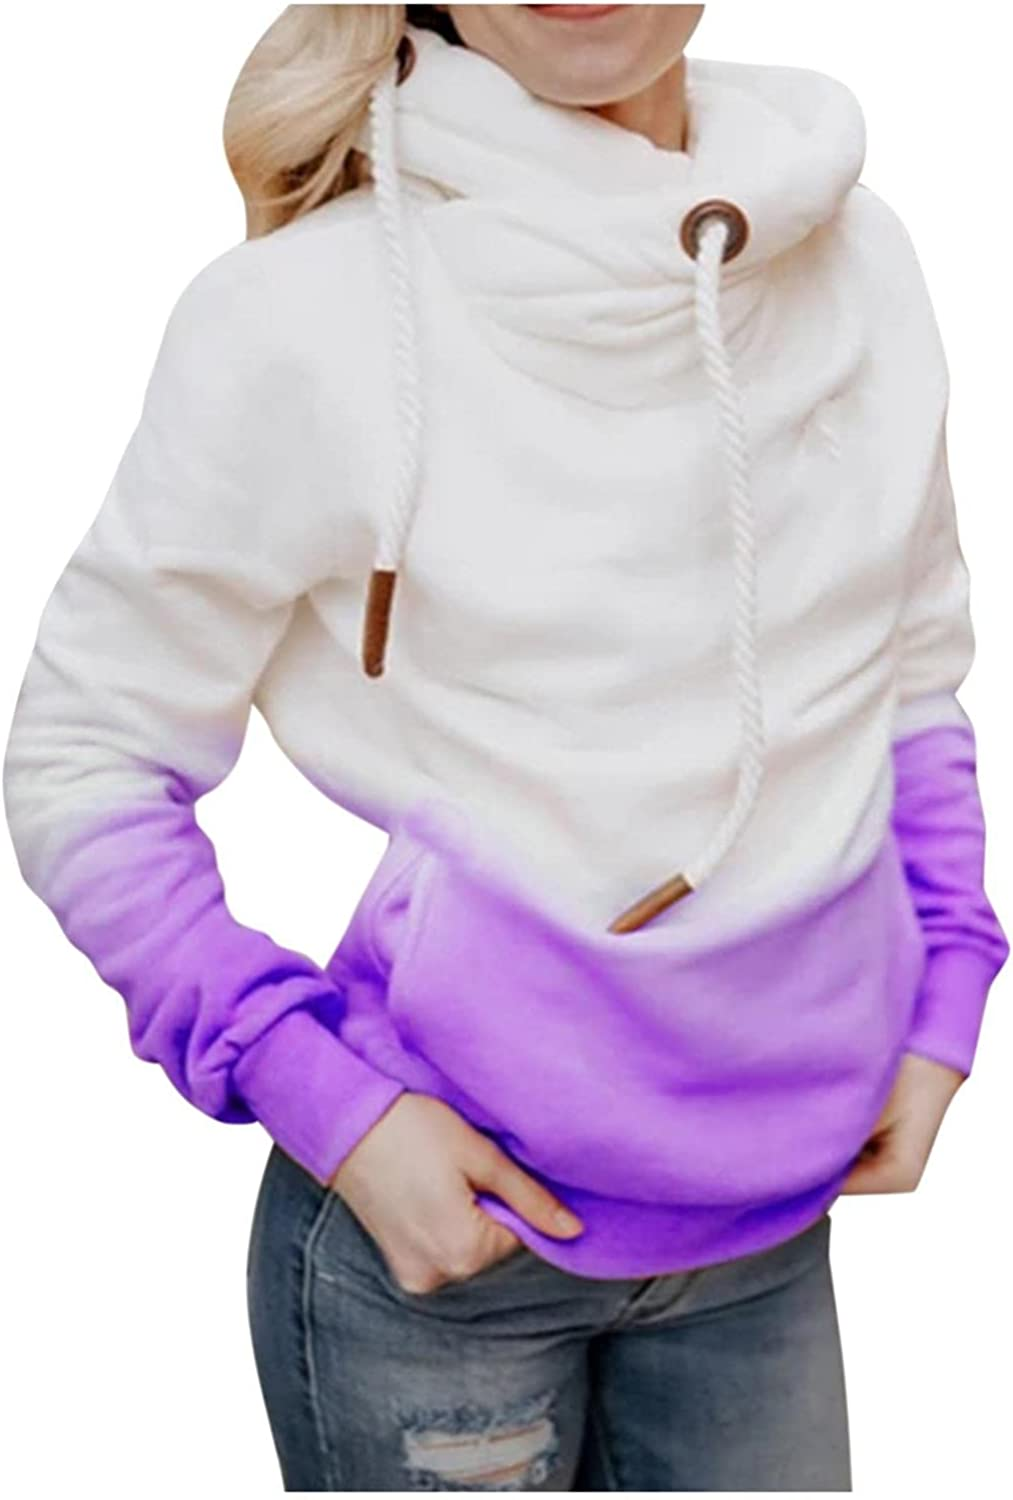 Gibobby Hoodies for Women Pullover Tie Dye Color Long Sleeve Sweatshirts Cowl Neck Oversized Drawstring Winter Blouses